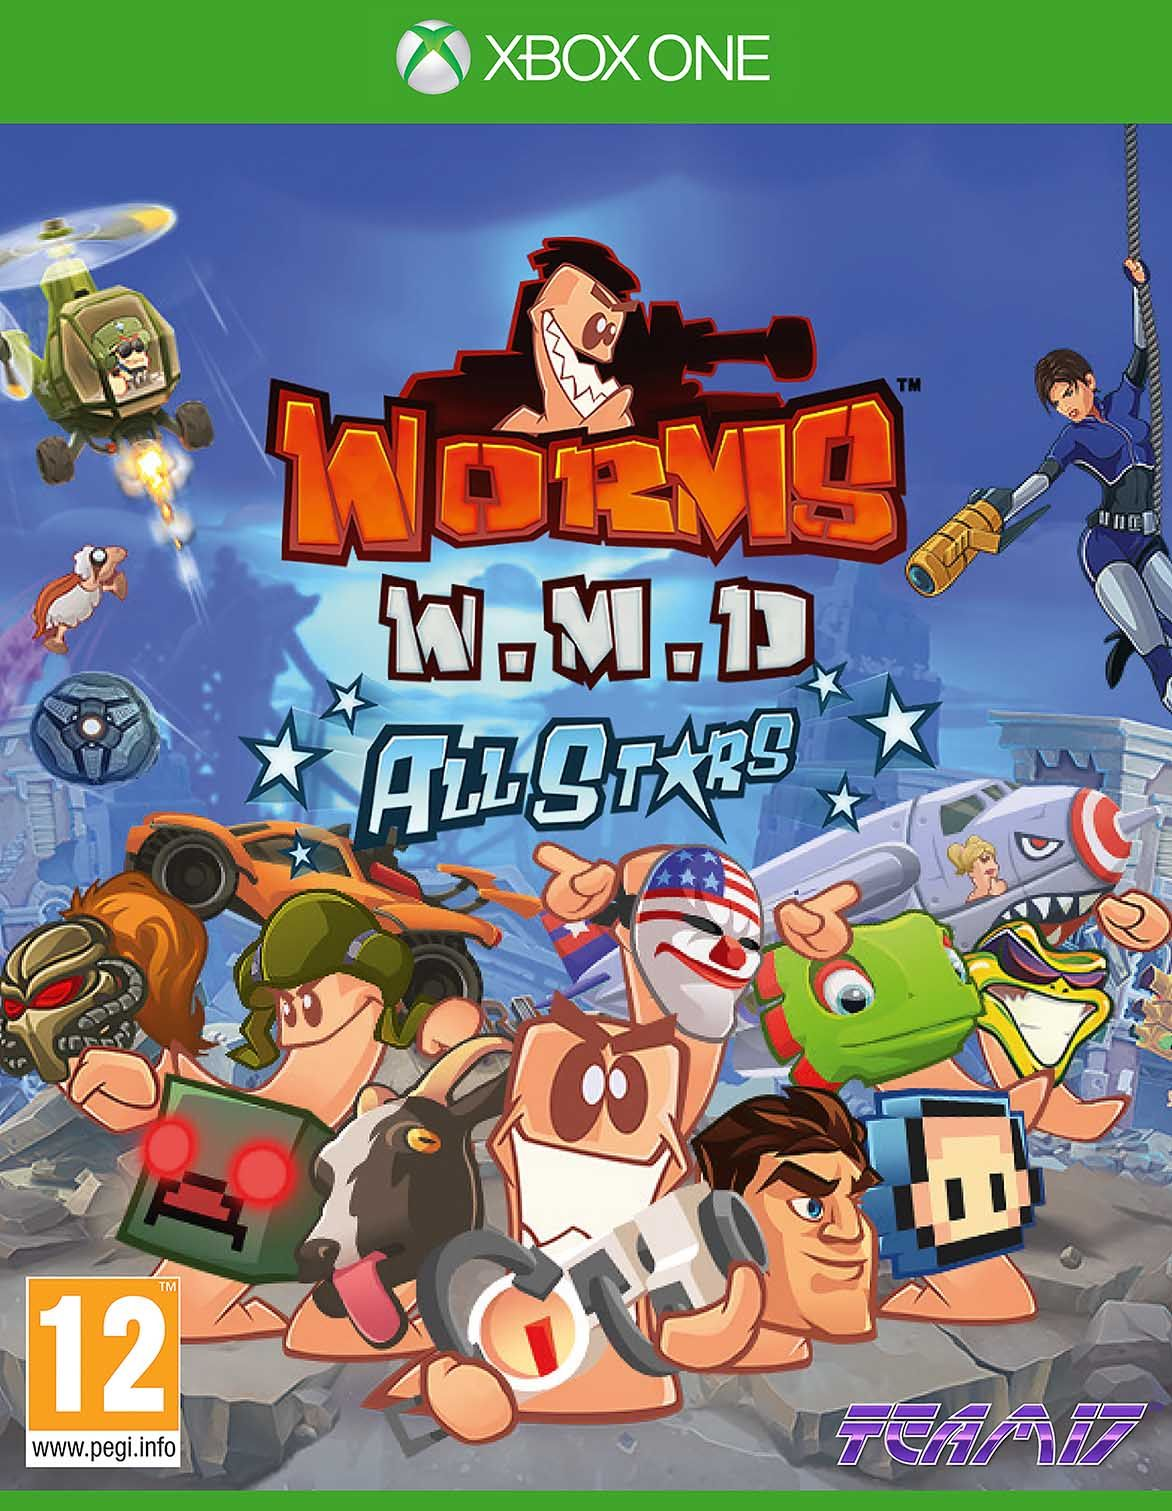 Worms Wmd All Stars (Xbox One)